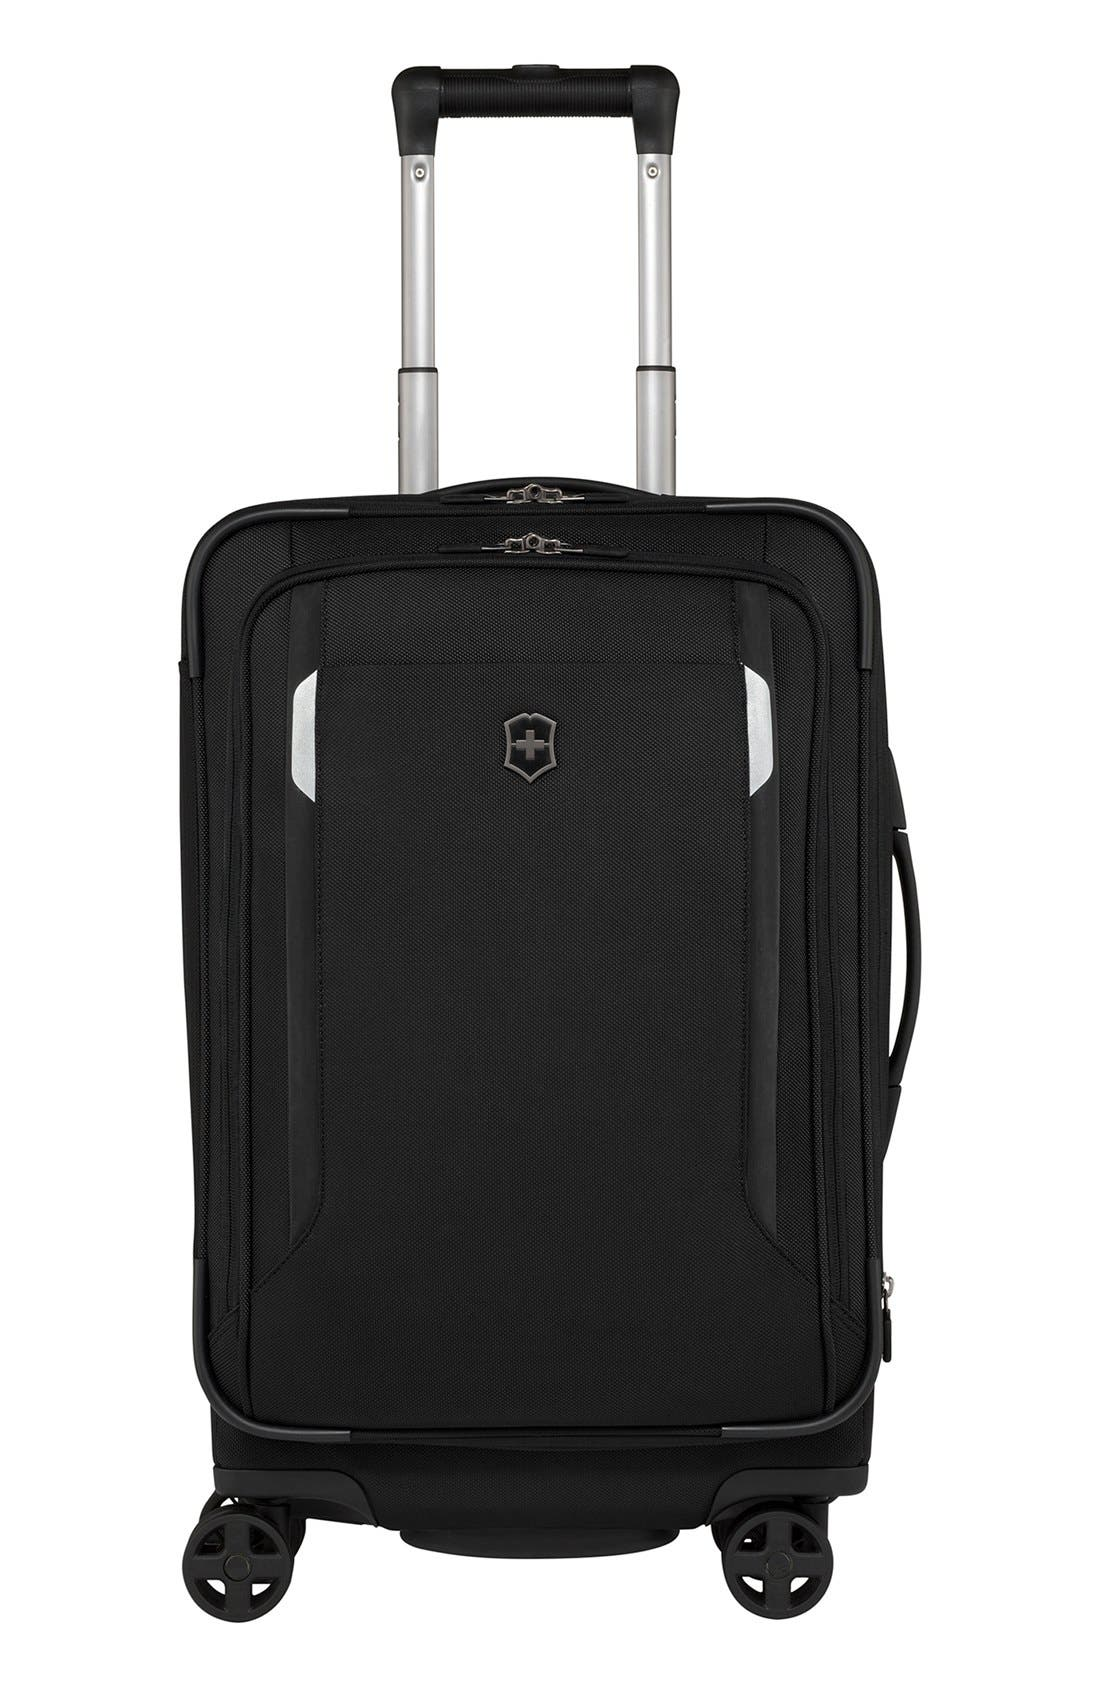 WT 5.0 Dual Caster Wheeled 22-Inch Carry-On,                             Main thumbnail 2, color,